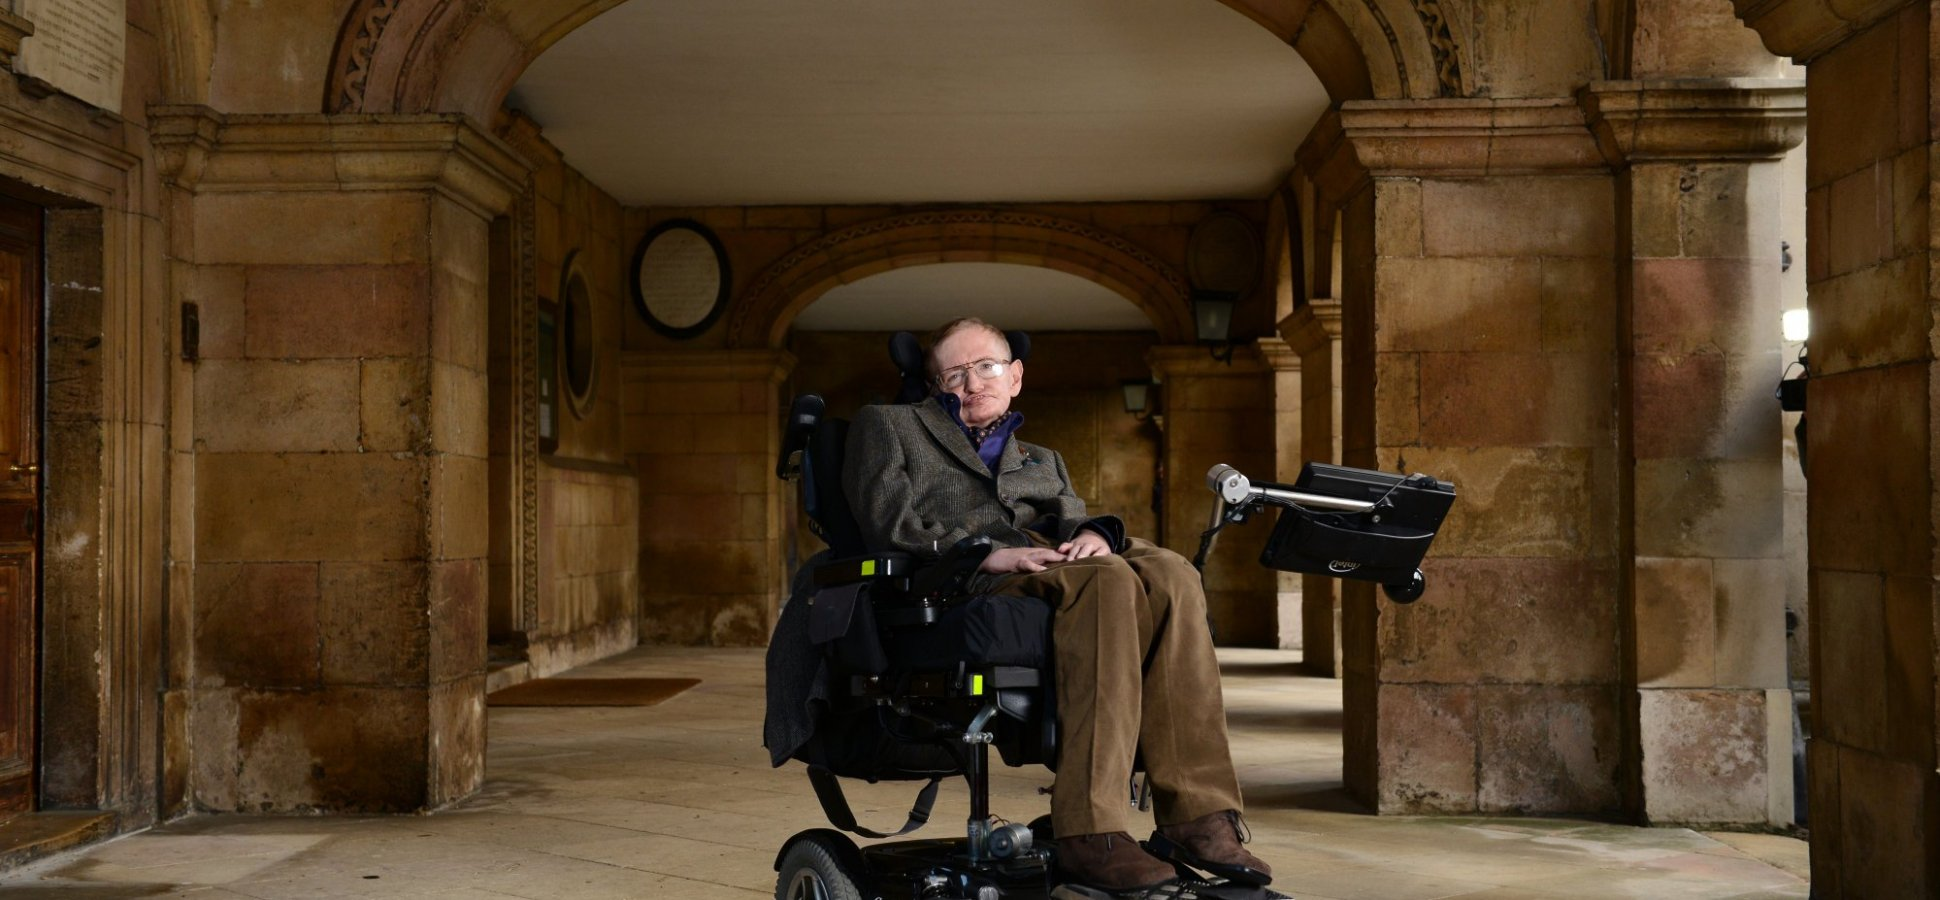 3 Ways to Live a Beautiful Successful Life According to Stephen Hawking